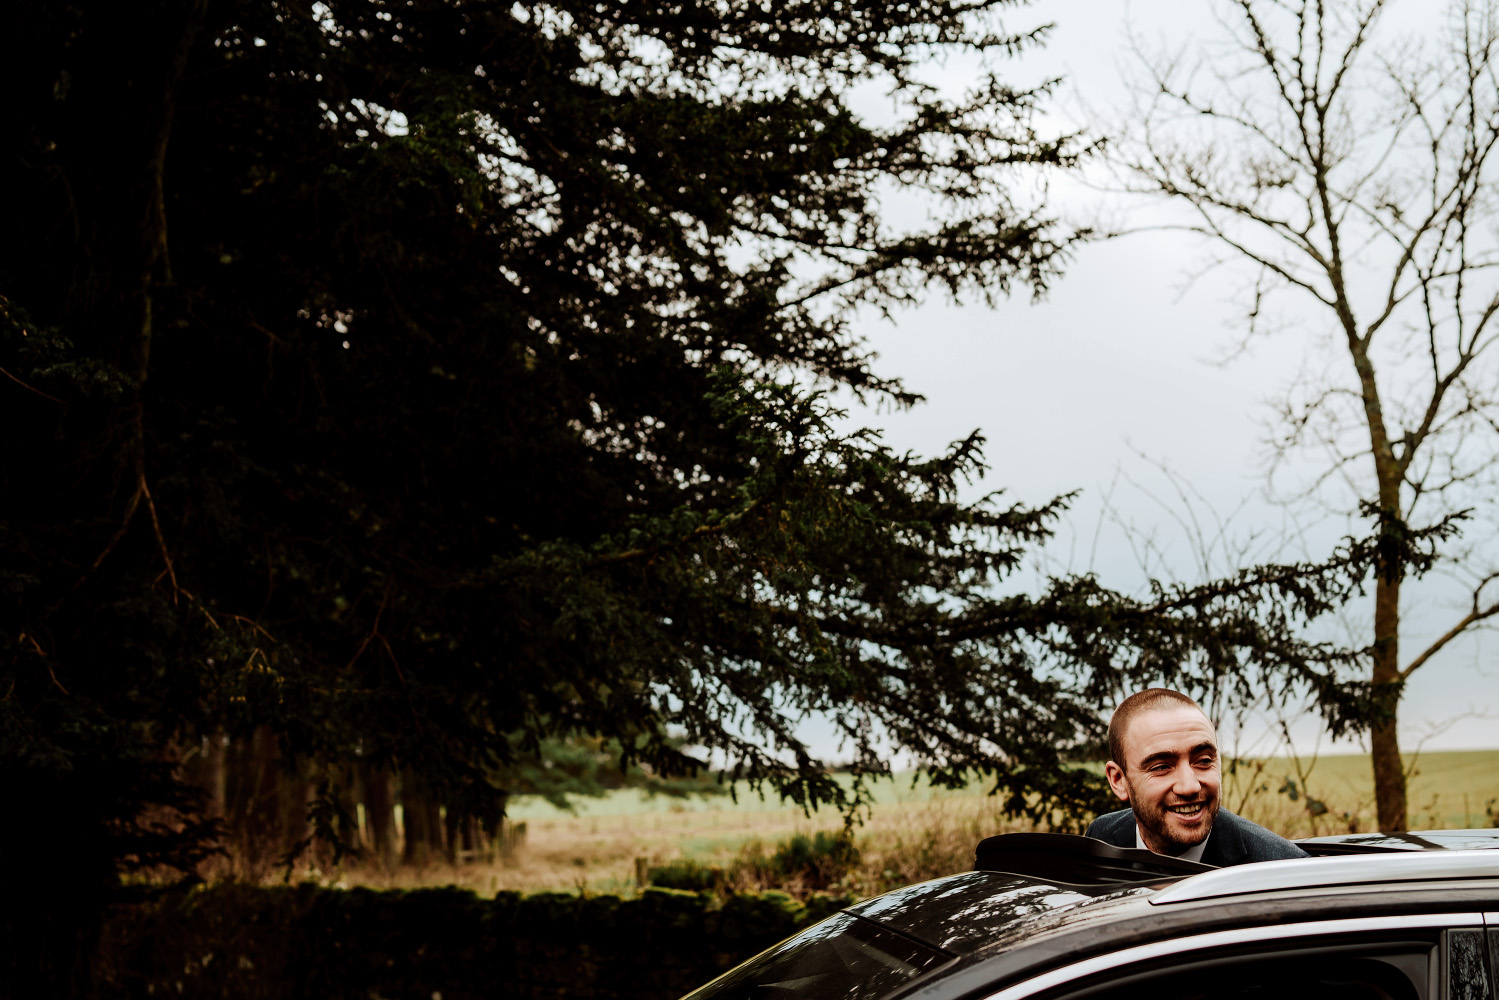 groomsman sticks his head out of car sunroof